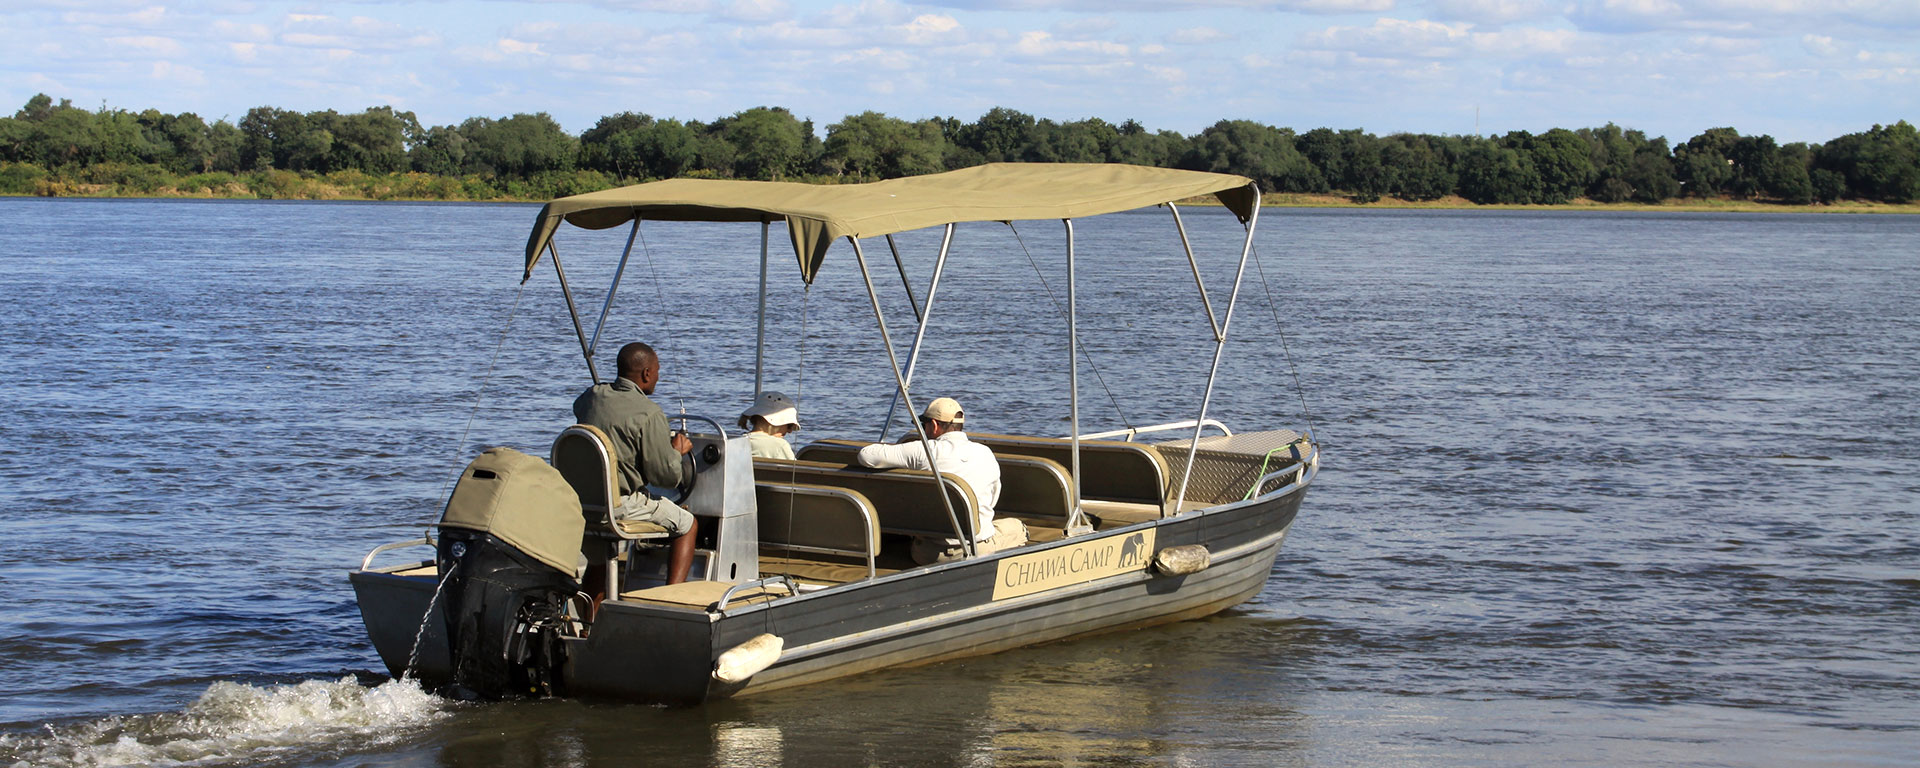 The Zambezi River allows for huge variety of activities in the park, like cruises, canoeing and fishing. It's a great place to pass the heat of the afternoon before the late game drive.